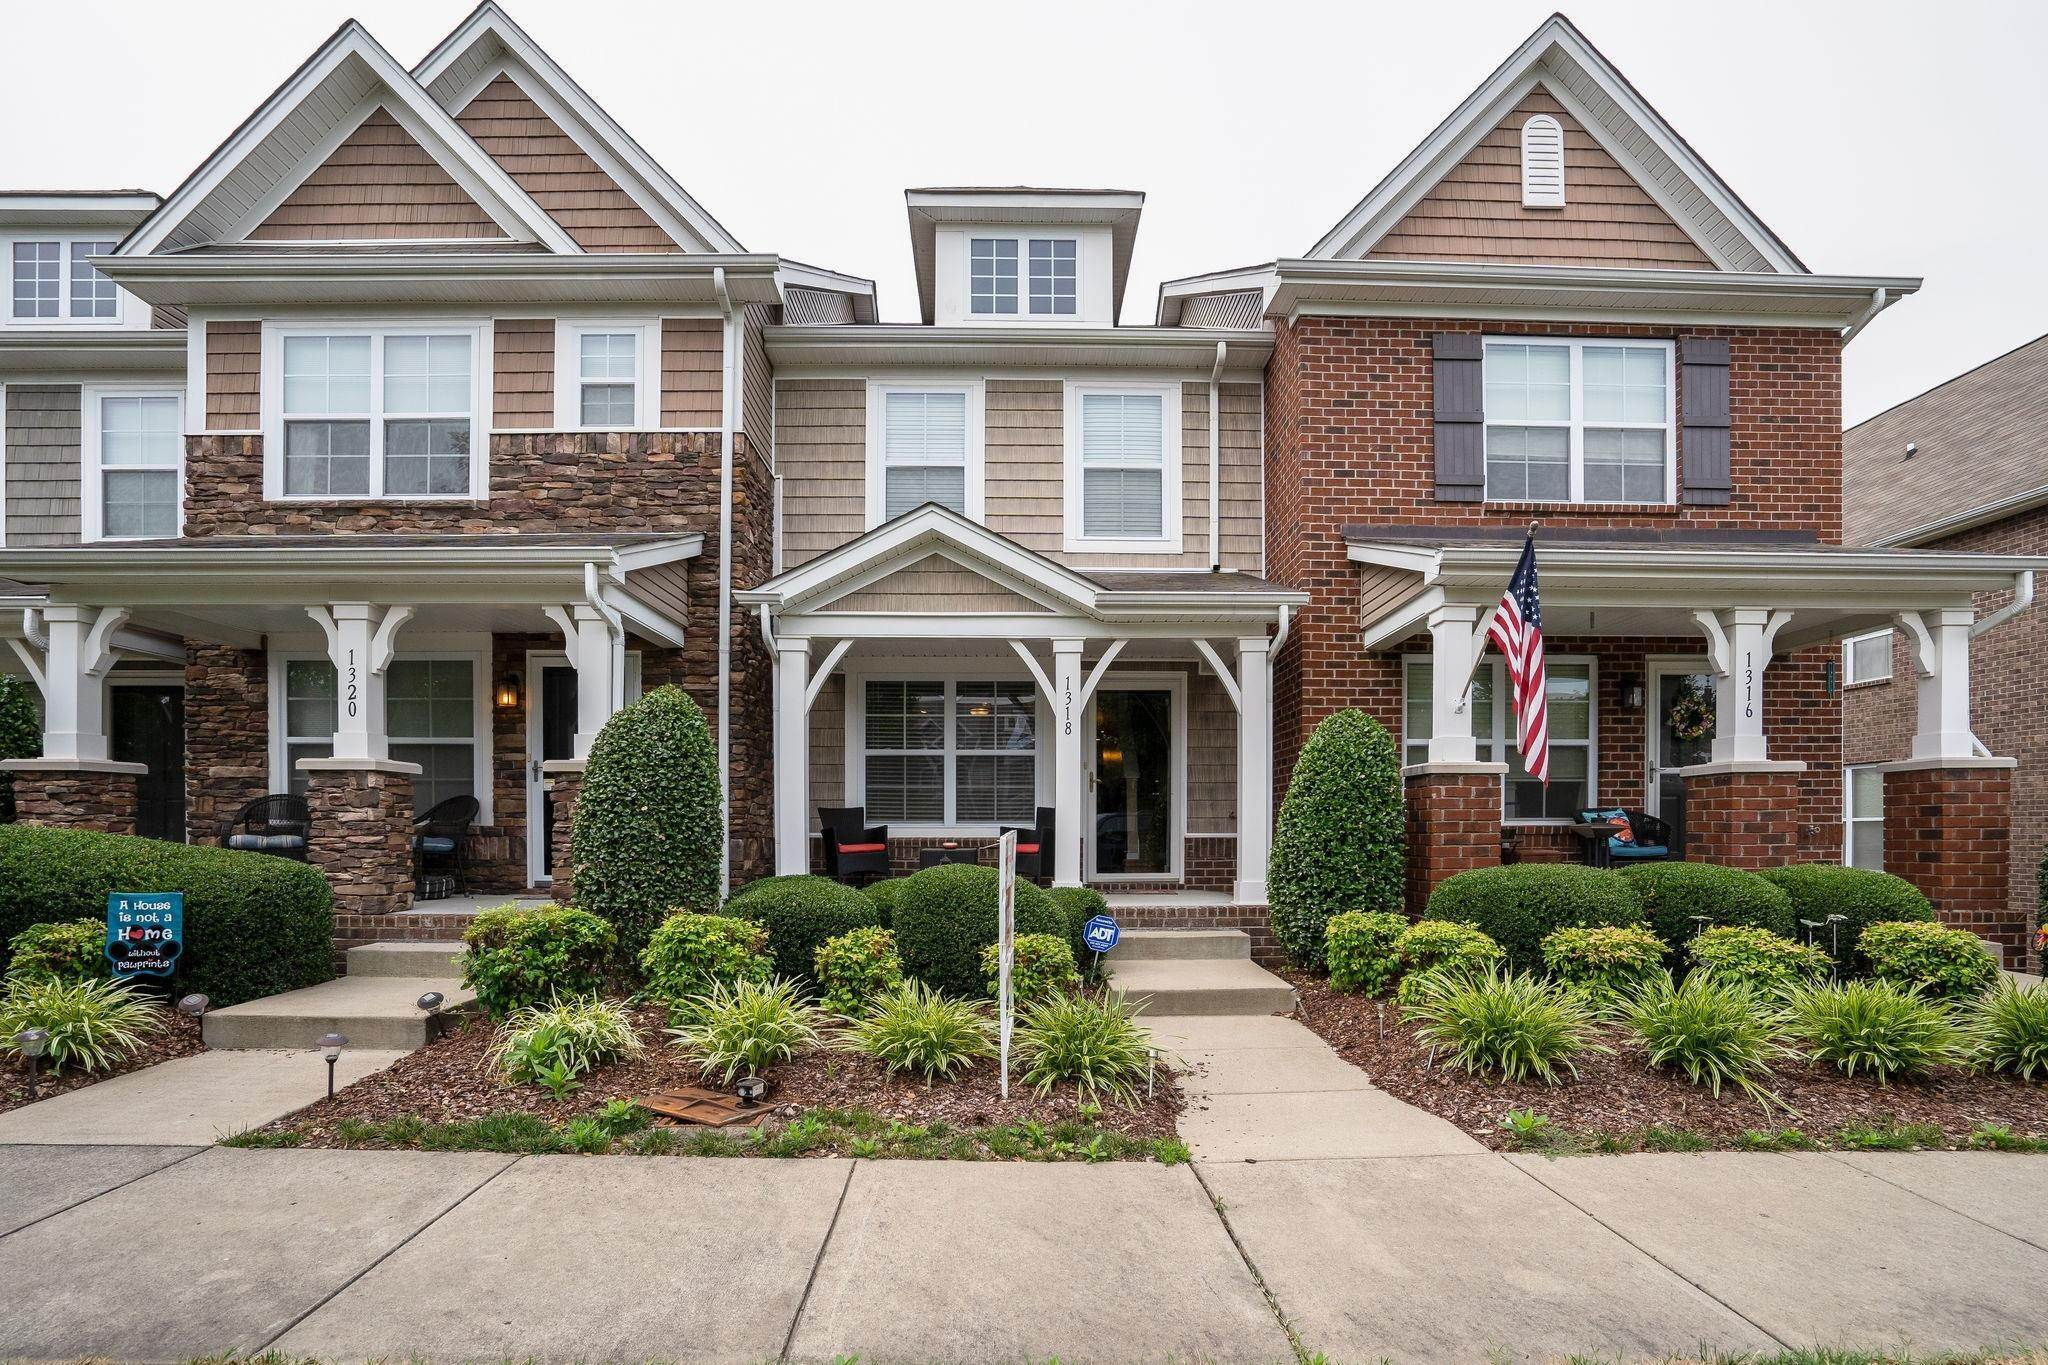 townhouses at 1318 Riverbrook Drive Hermitage, Tennessee 37076 United States